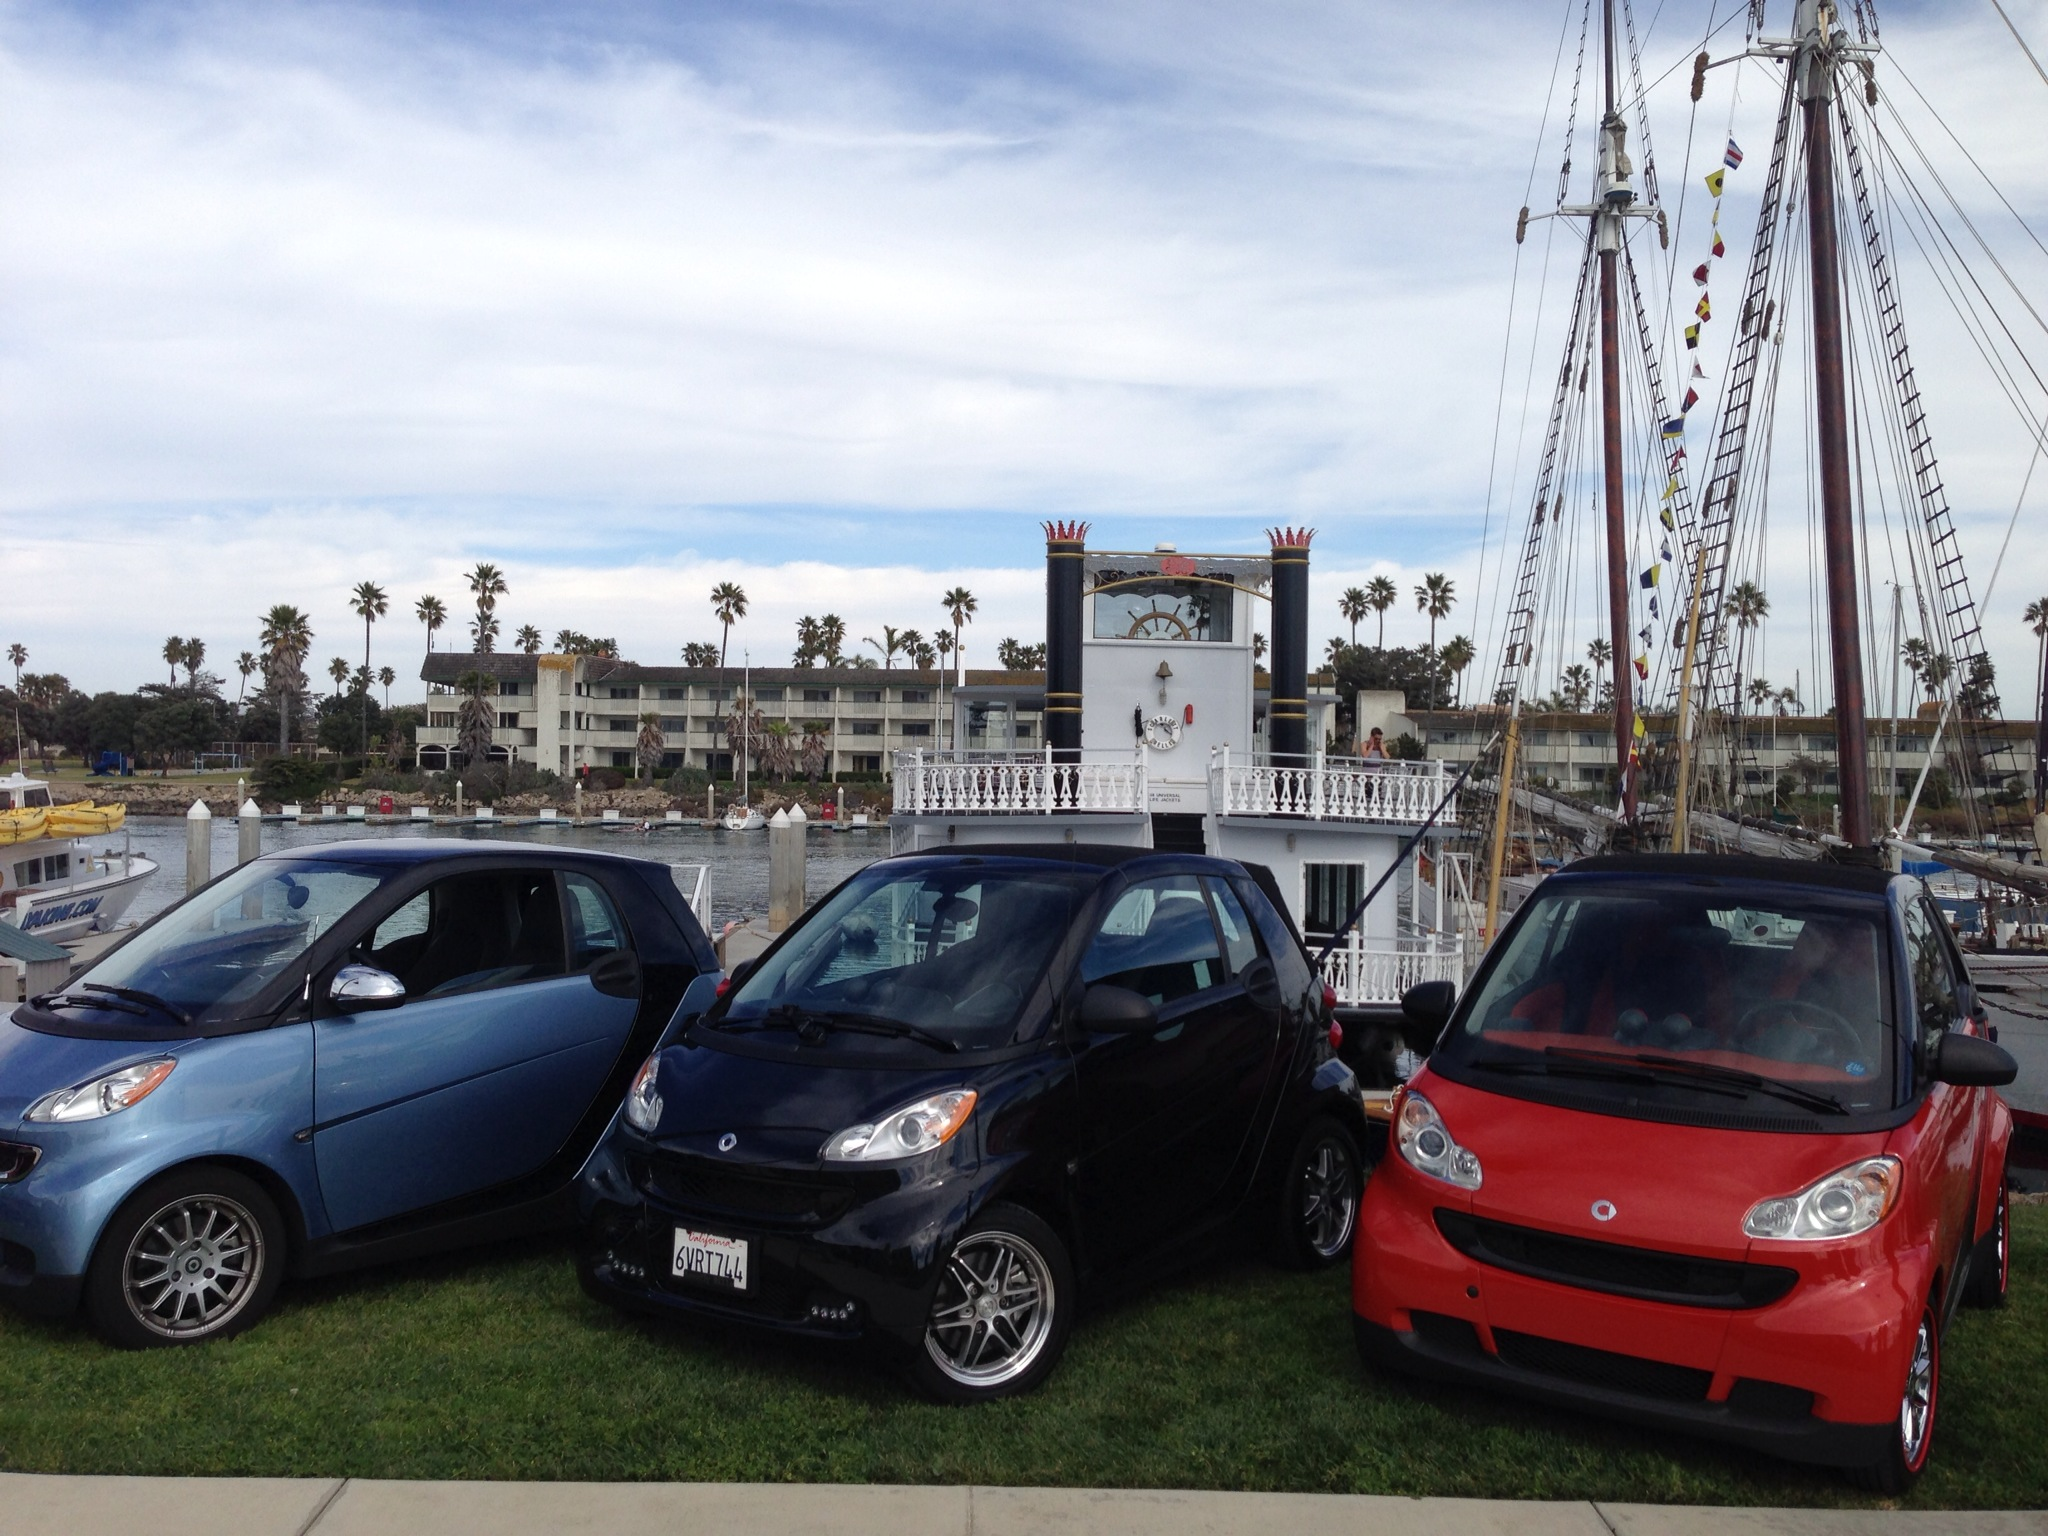 Our Smart (Black one in the middle) in front of our boat, The Scarlett Belle